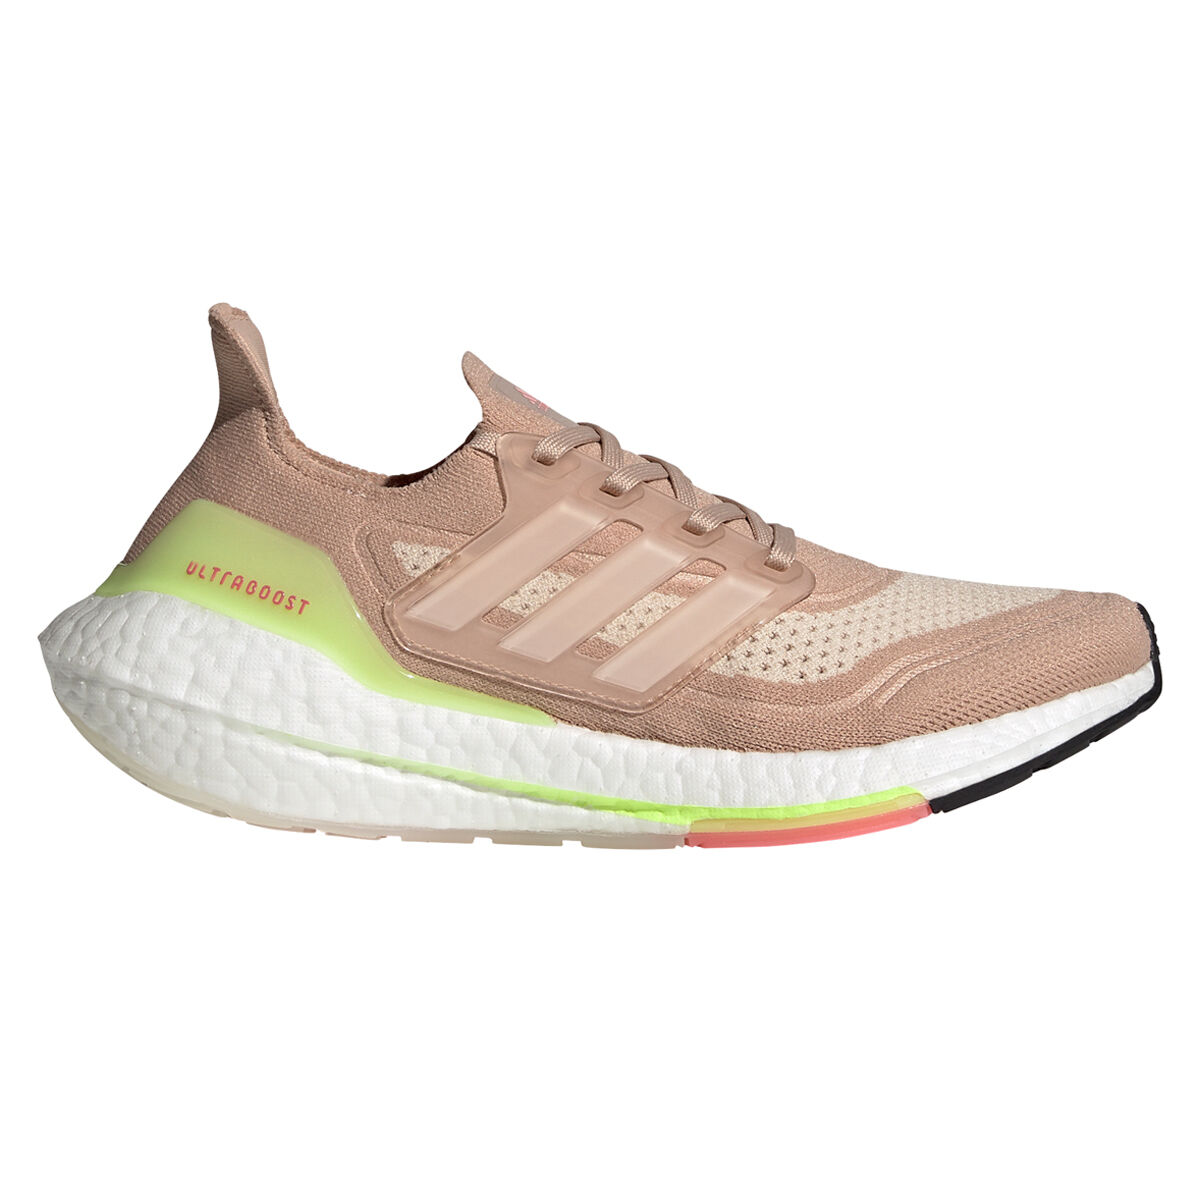 zx flux adv tech shoes price guide list for sale | adidas Ultraboost 21 Womens Running Shoes